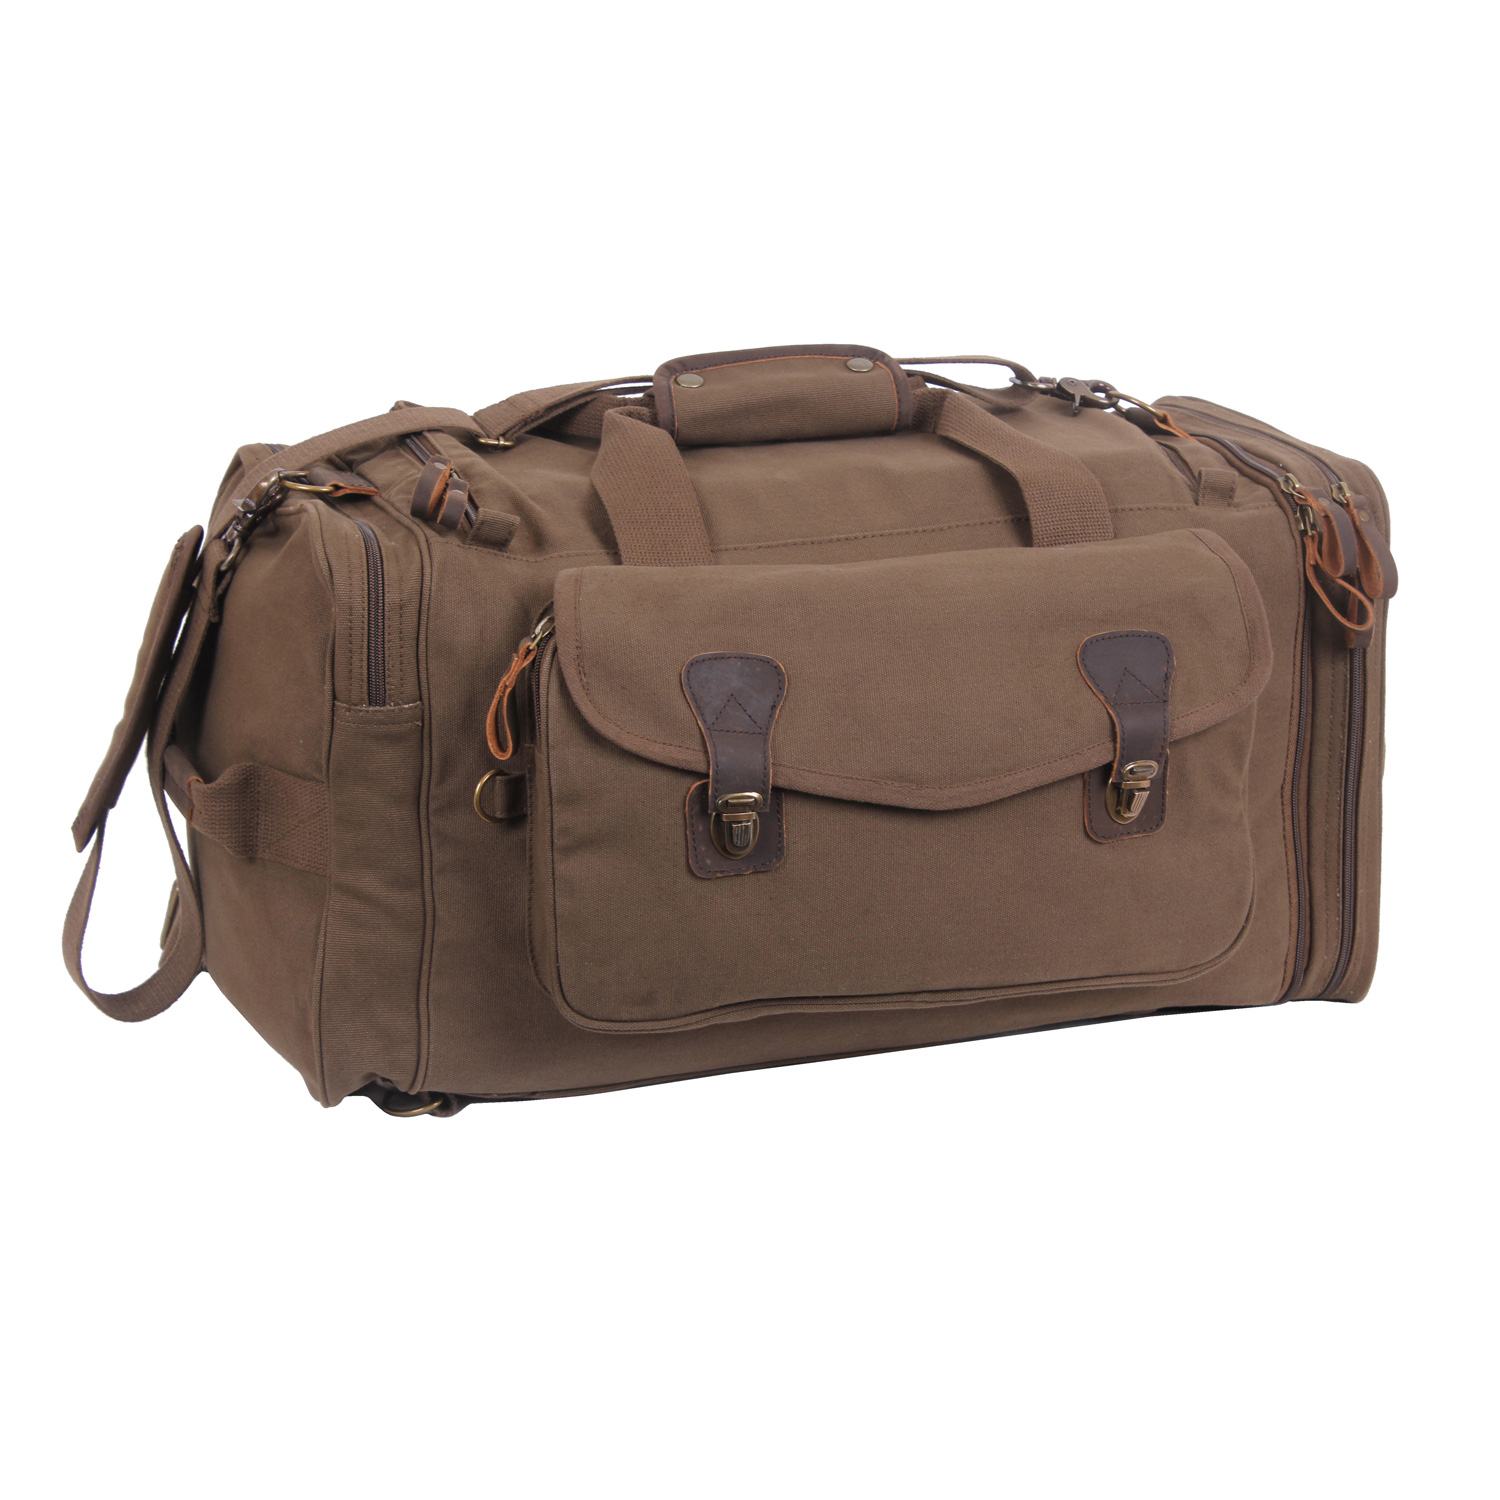 Rothco Canvas Extended Stay Travel Duffle Bag  505331d70bf82